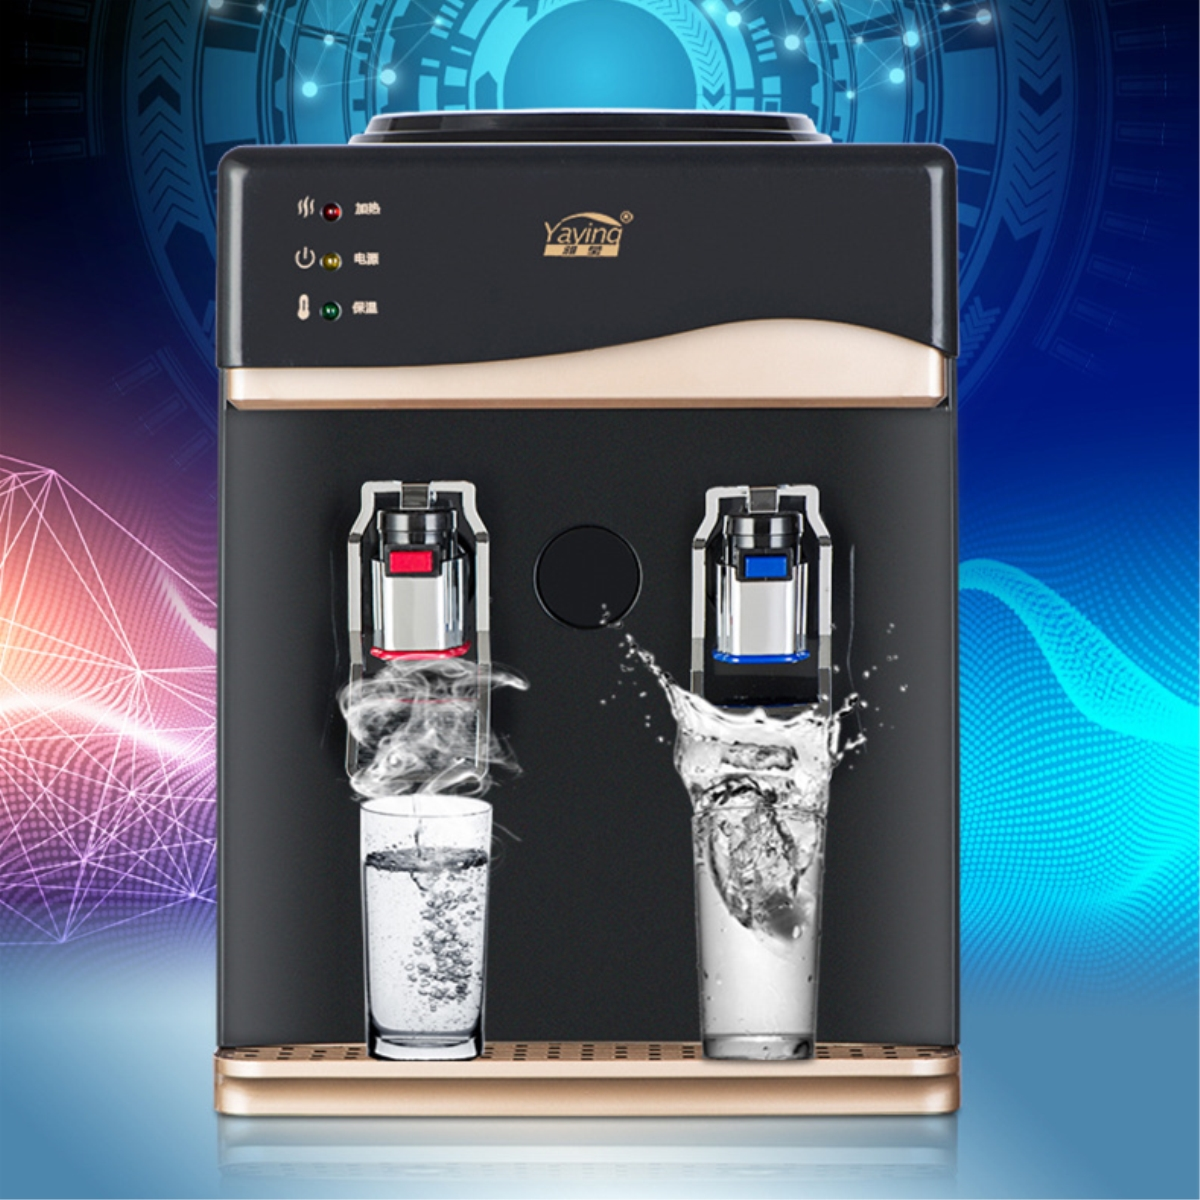 Yaving Drinking Cooler Table Top Household Warm Cold Hot Galloon Water Dispenser Automatic Waterer